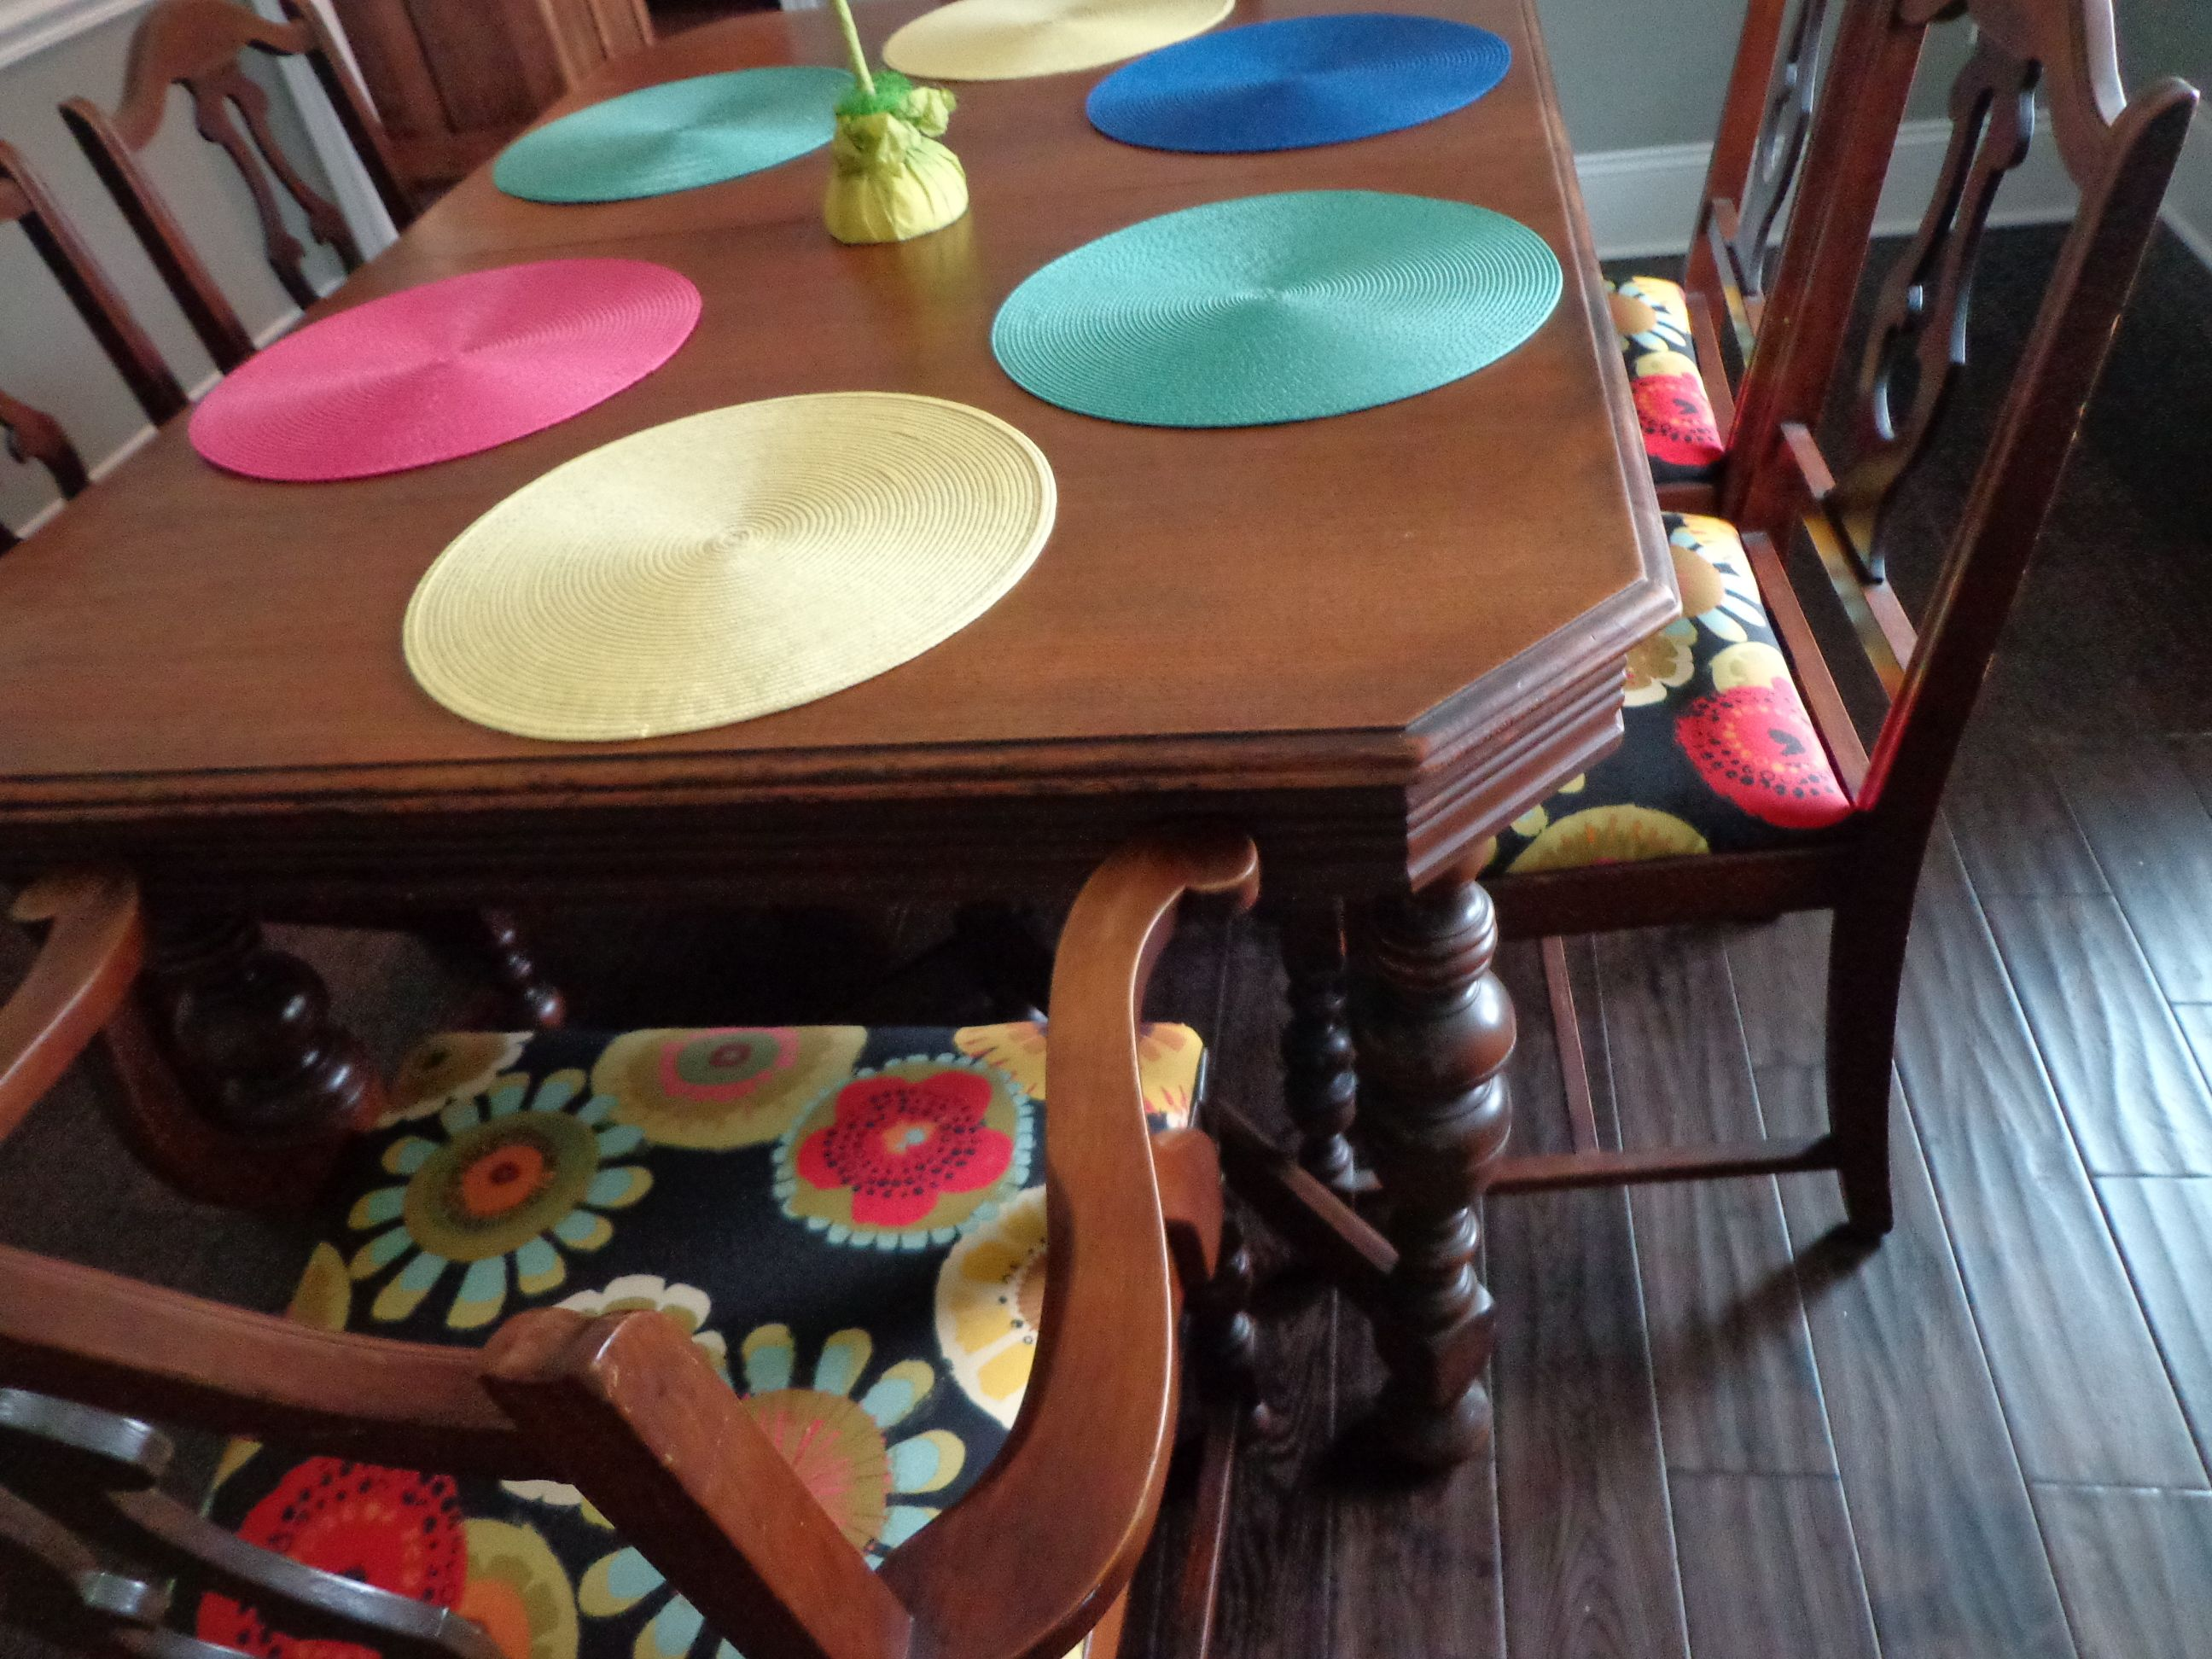 Floral on chair seats and bright colors on place mats curtains